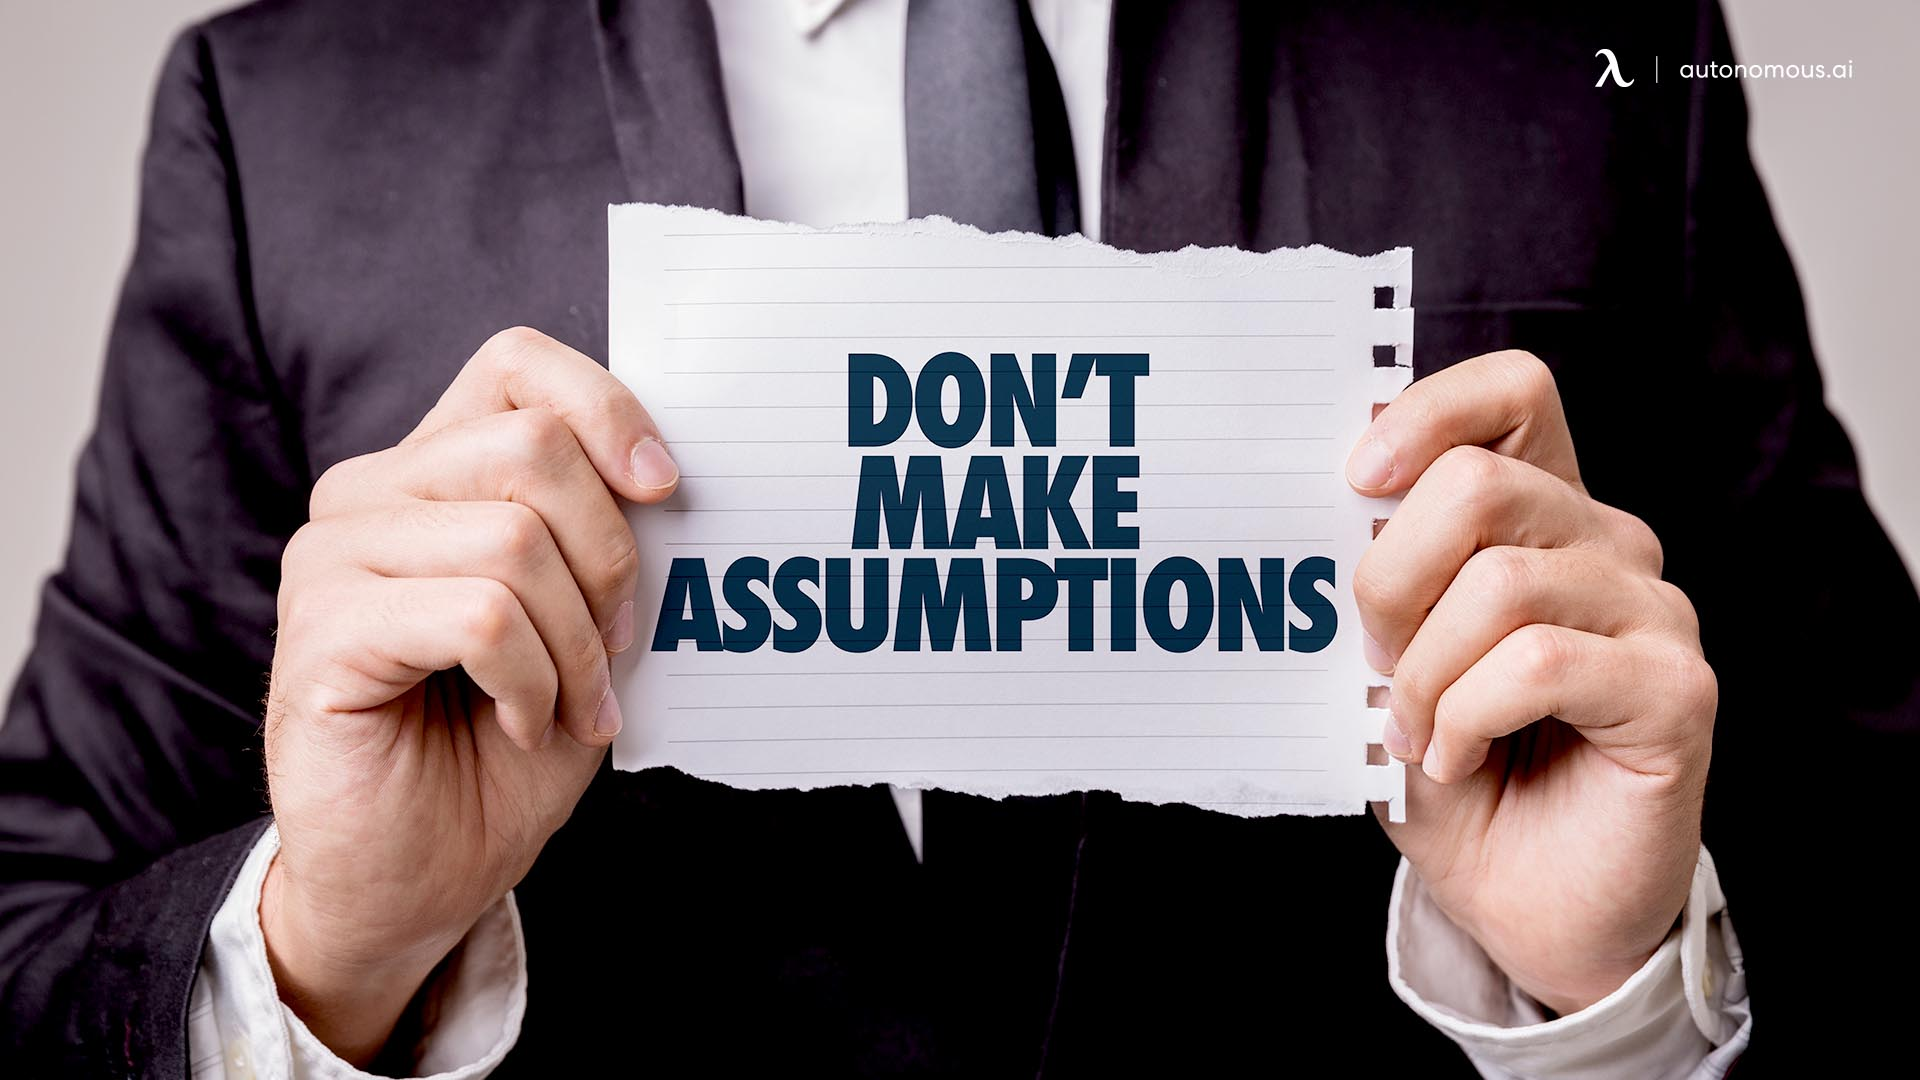 Avoid Making Any Assumptions